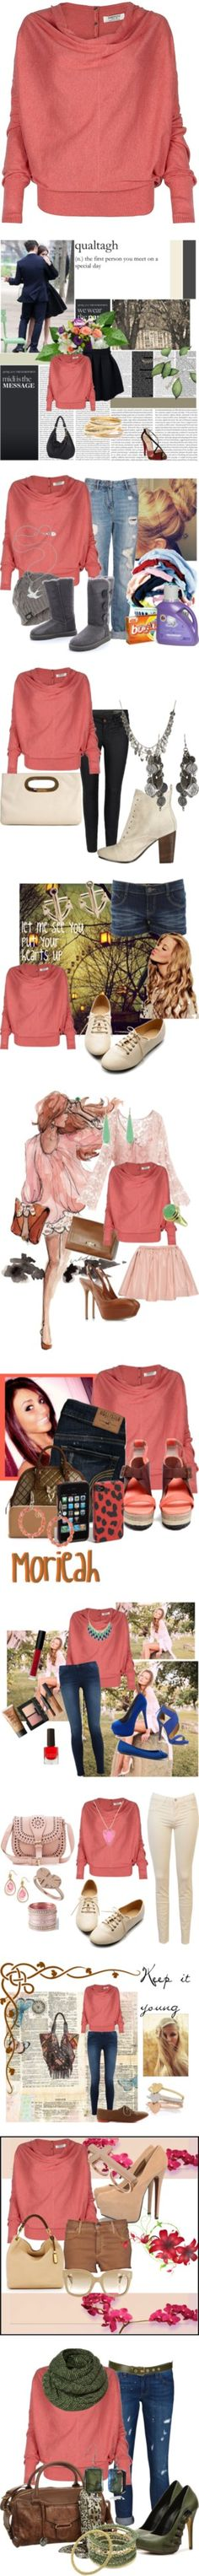 """Sets I Love with the Elgar Cowl Neck Jumper"" by ana-soro ❤ liked on Polyvore"